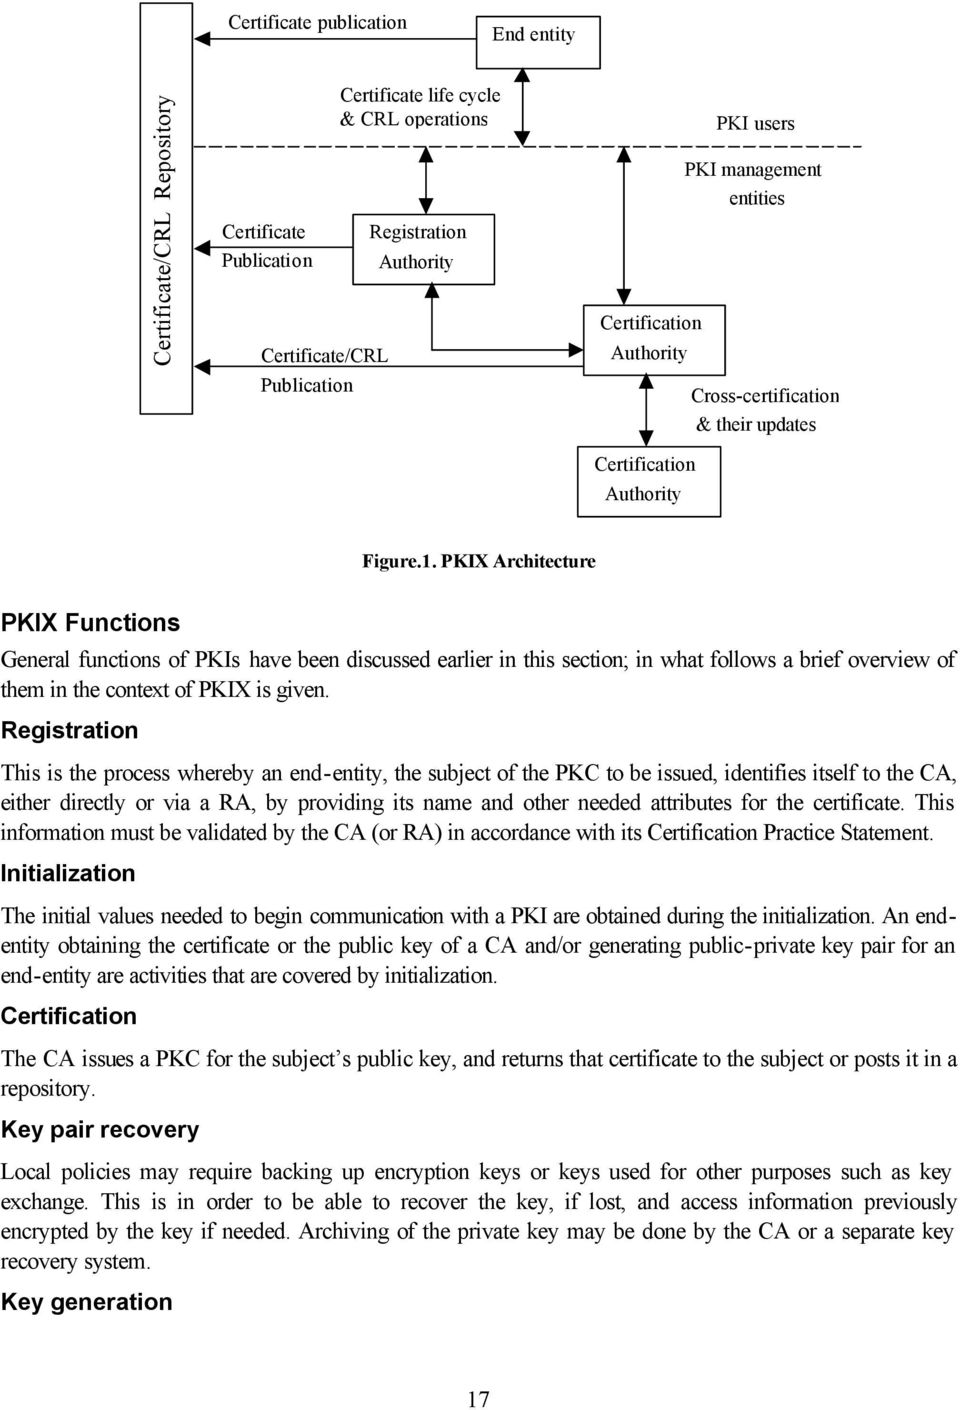 PKIX Architecture PKIX Functions General functions of PKIs have been discussed earlier in this section; in what follows a brief overview of them in the context of PKIX is given.